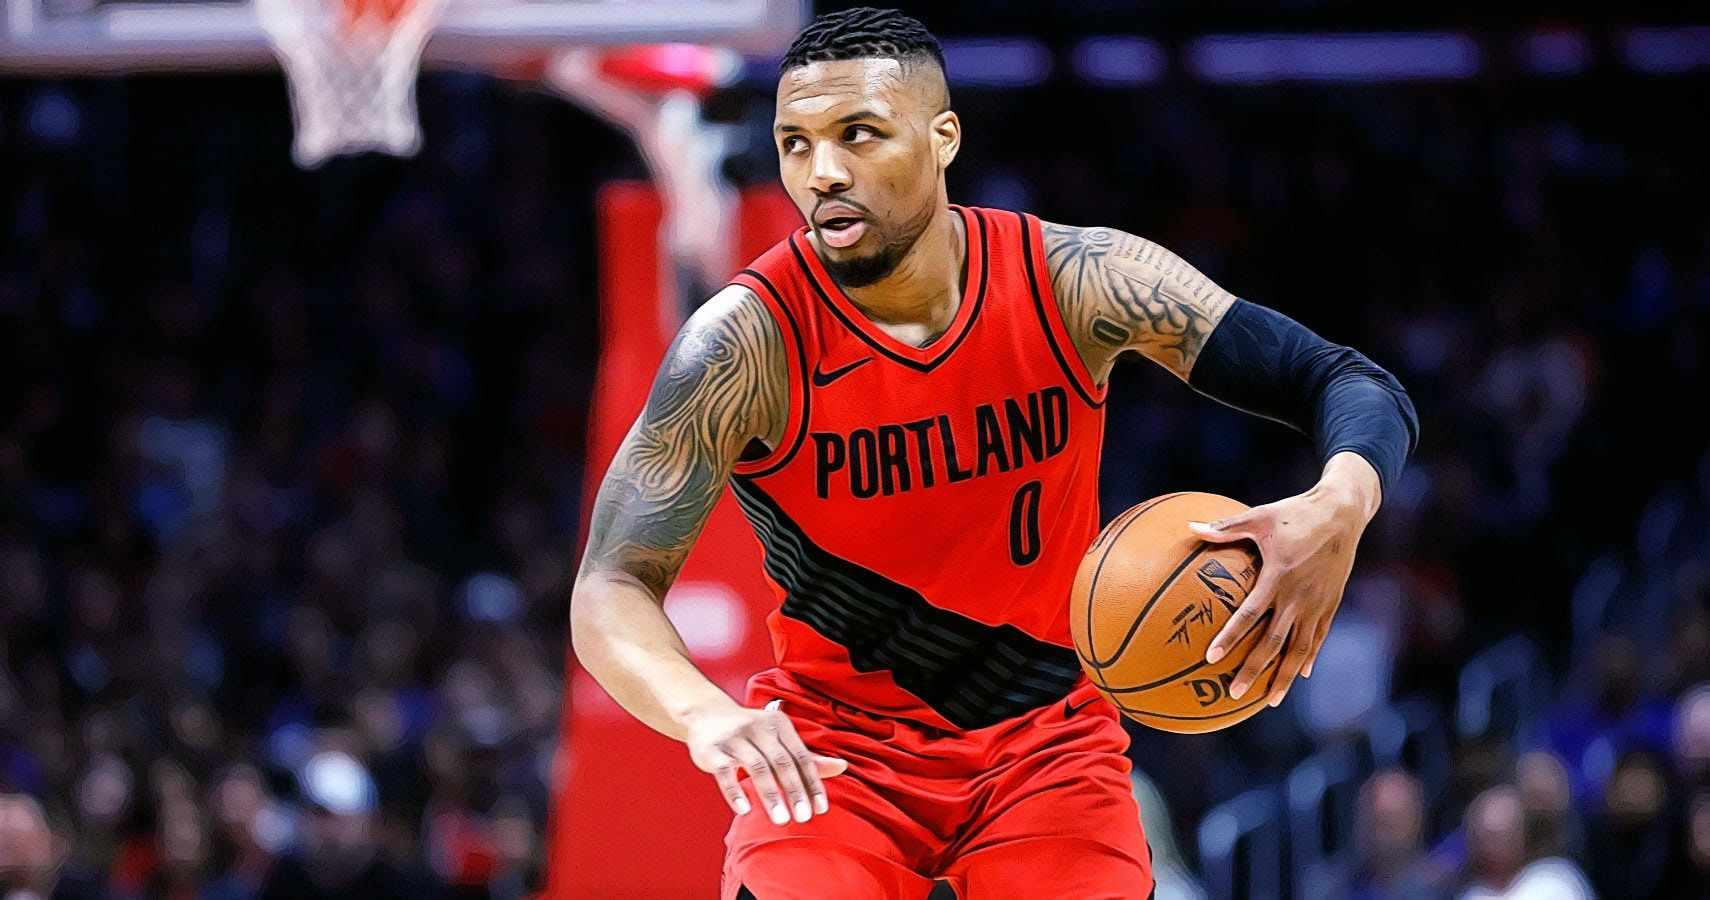 NBA Free Agency News: Lillard Vows Loyalty For Portland, Warriors Thinking Giannis In 2021, And The Latest Player Signings